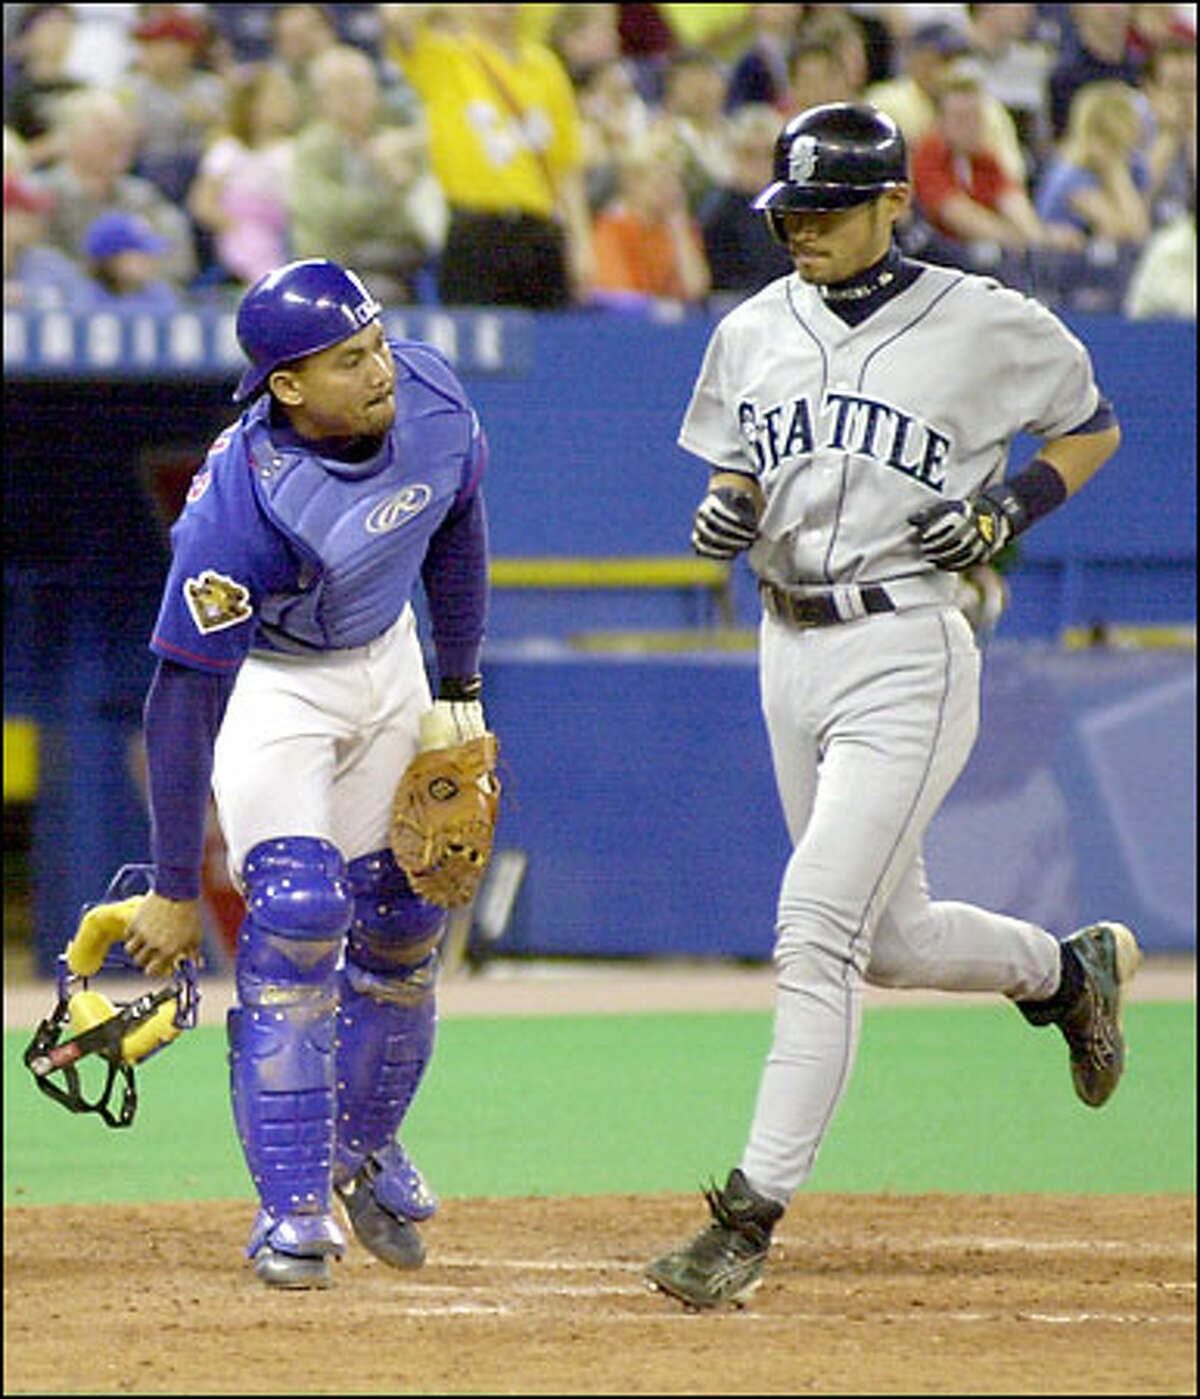 Ichiro Suzuki, passing in front of Toronto catcher Alberto Castillo to score, was a home run from hitting for the cycle both Saturday and yesterday.